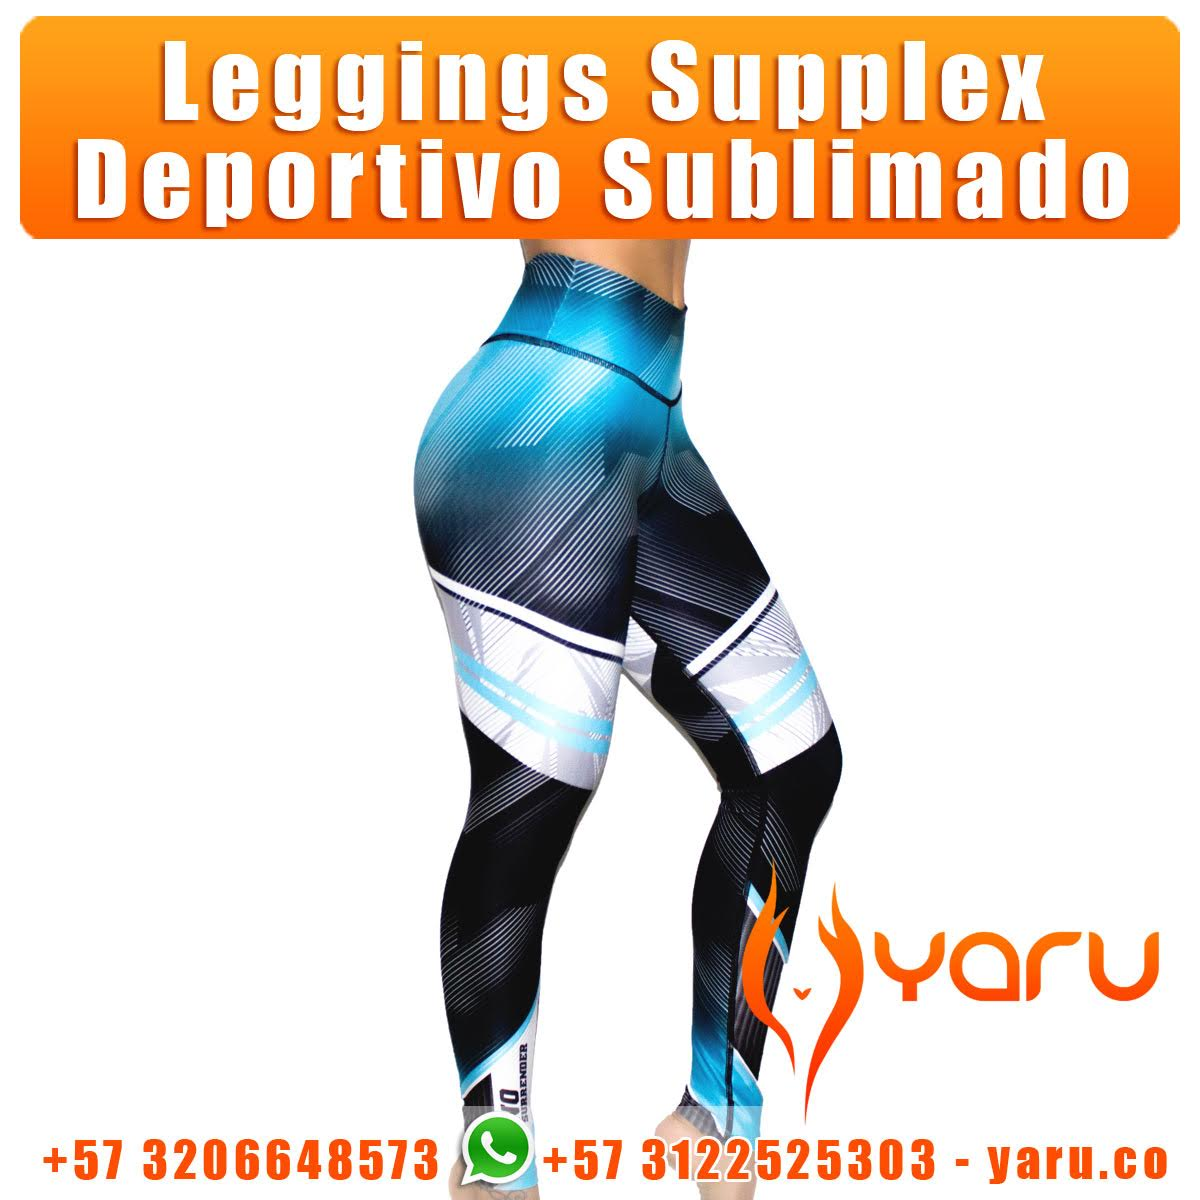 ee242ca7499e7 leggins supplex deportivo colombiano pantalon supplex deportivo colombiano